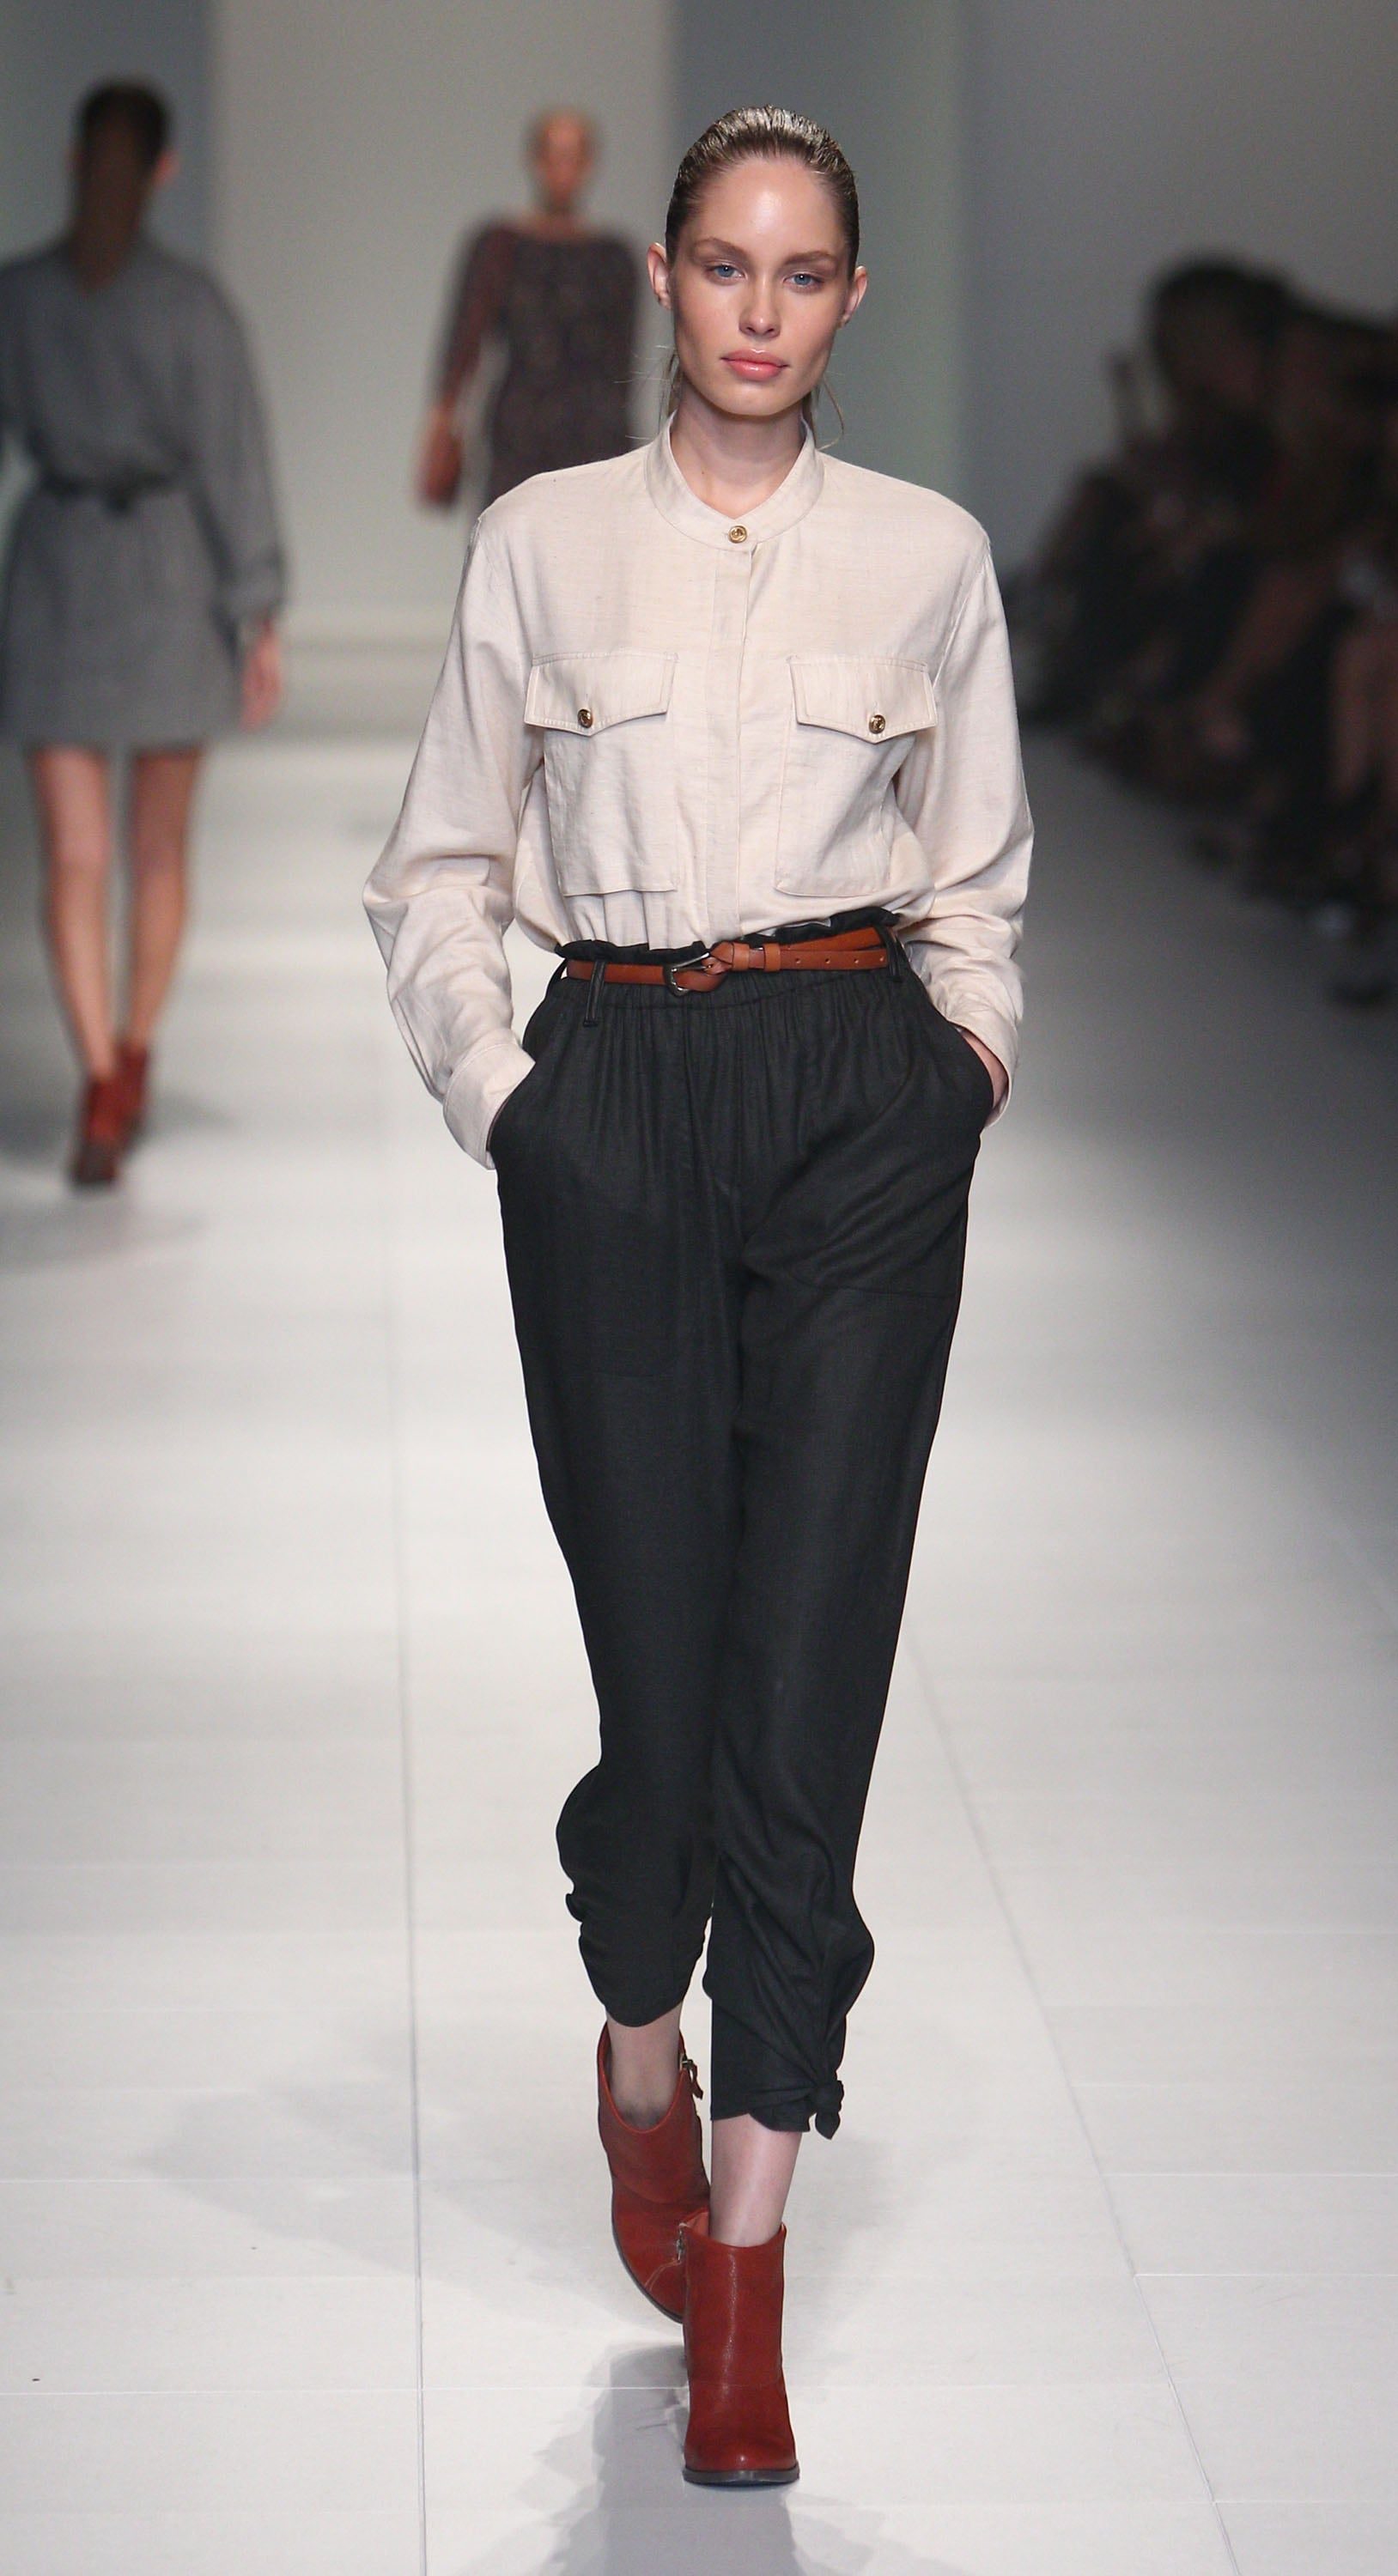 Laurence Pasquier's chic shirting got our attention.